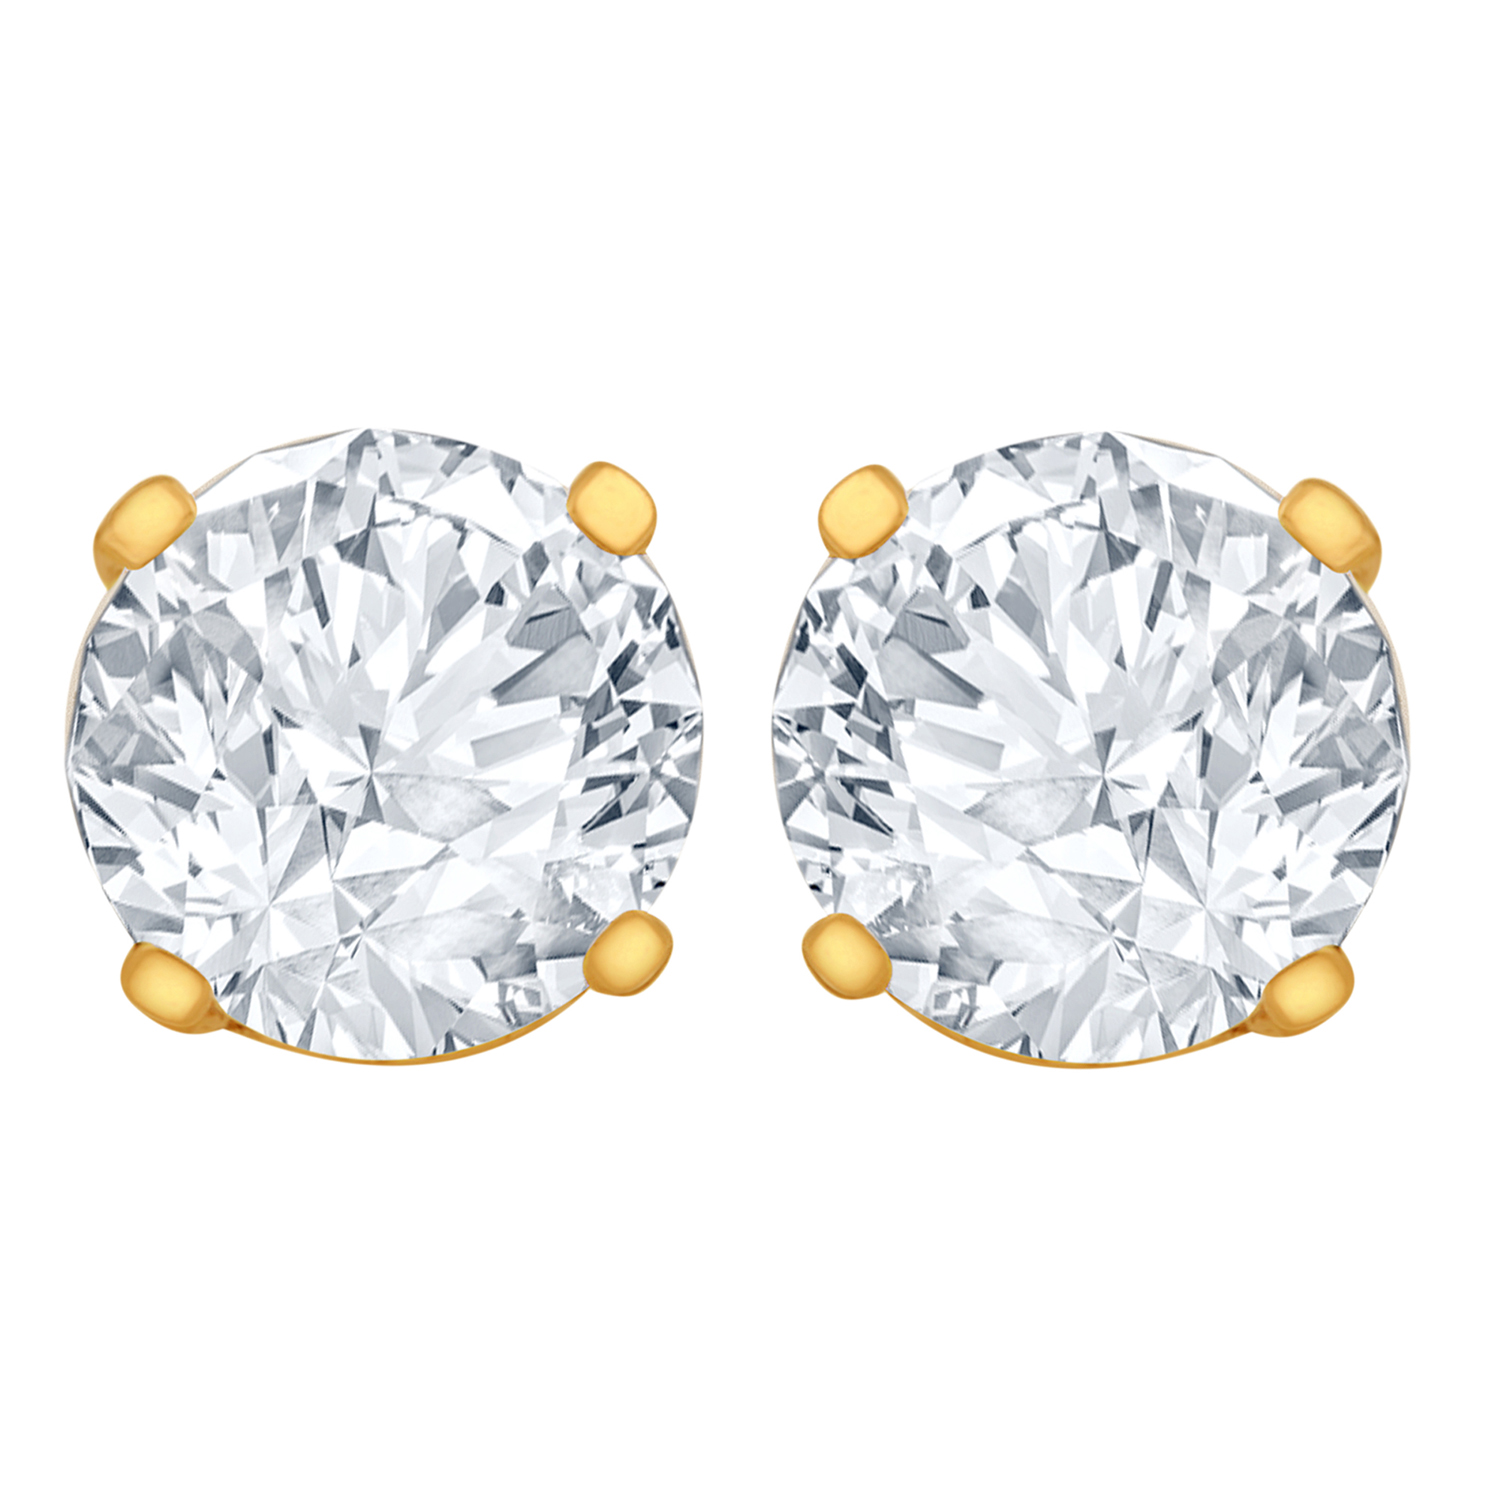 1/4 Carat Diamond Stud Earrings (I2I3 Clarity, JK Color) 14kt Yellow Gold